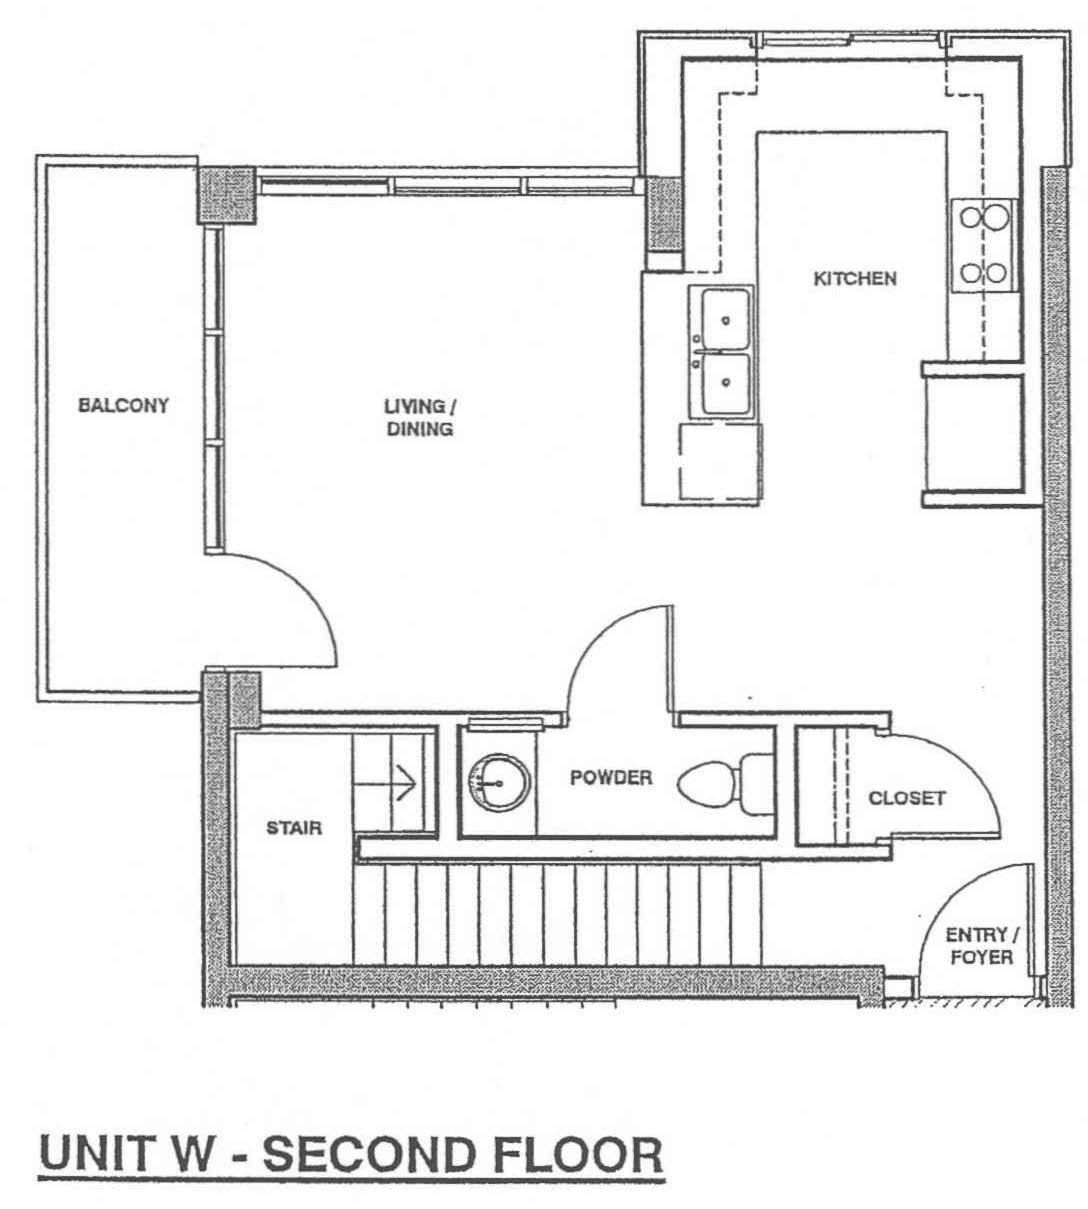 Fahrenheit Unit W – Second Floor